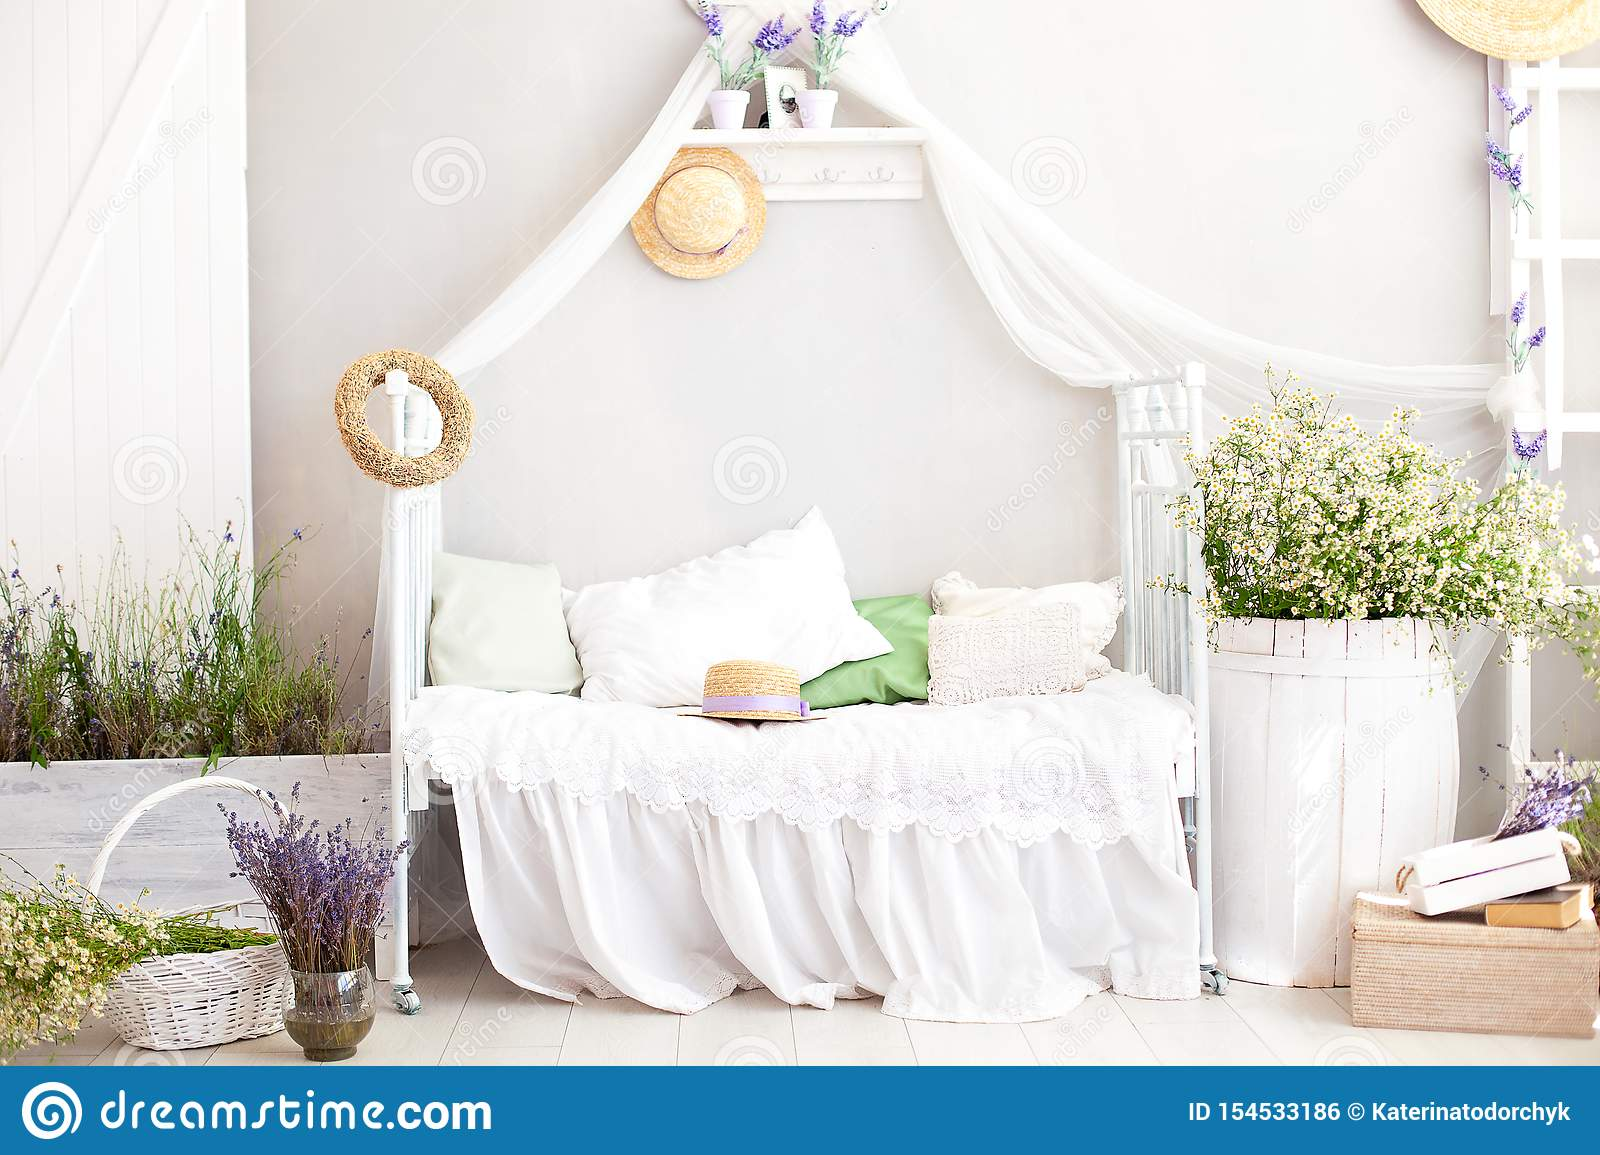 Provence Style Rustic Style Shabby Chic Interior Girly Provencal Style Bedroom Vintage Room Interior With White Wrought Iron Be Stock Photo Image Of Hotel Furniture 154533186